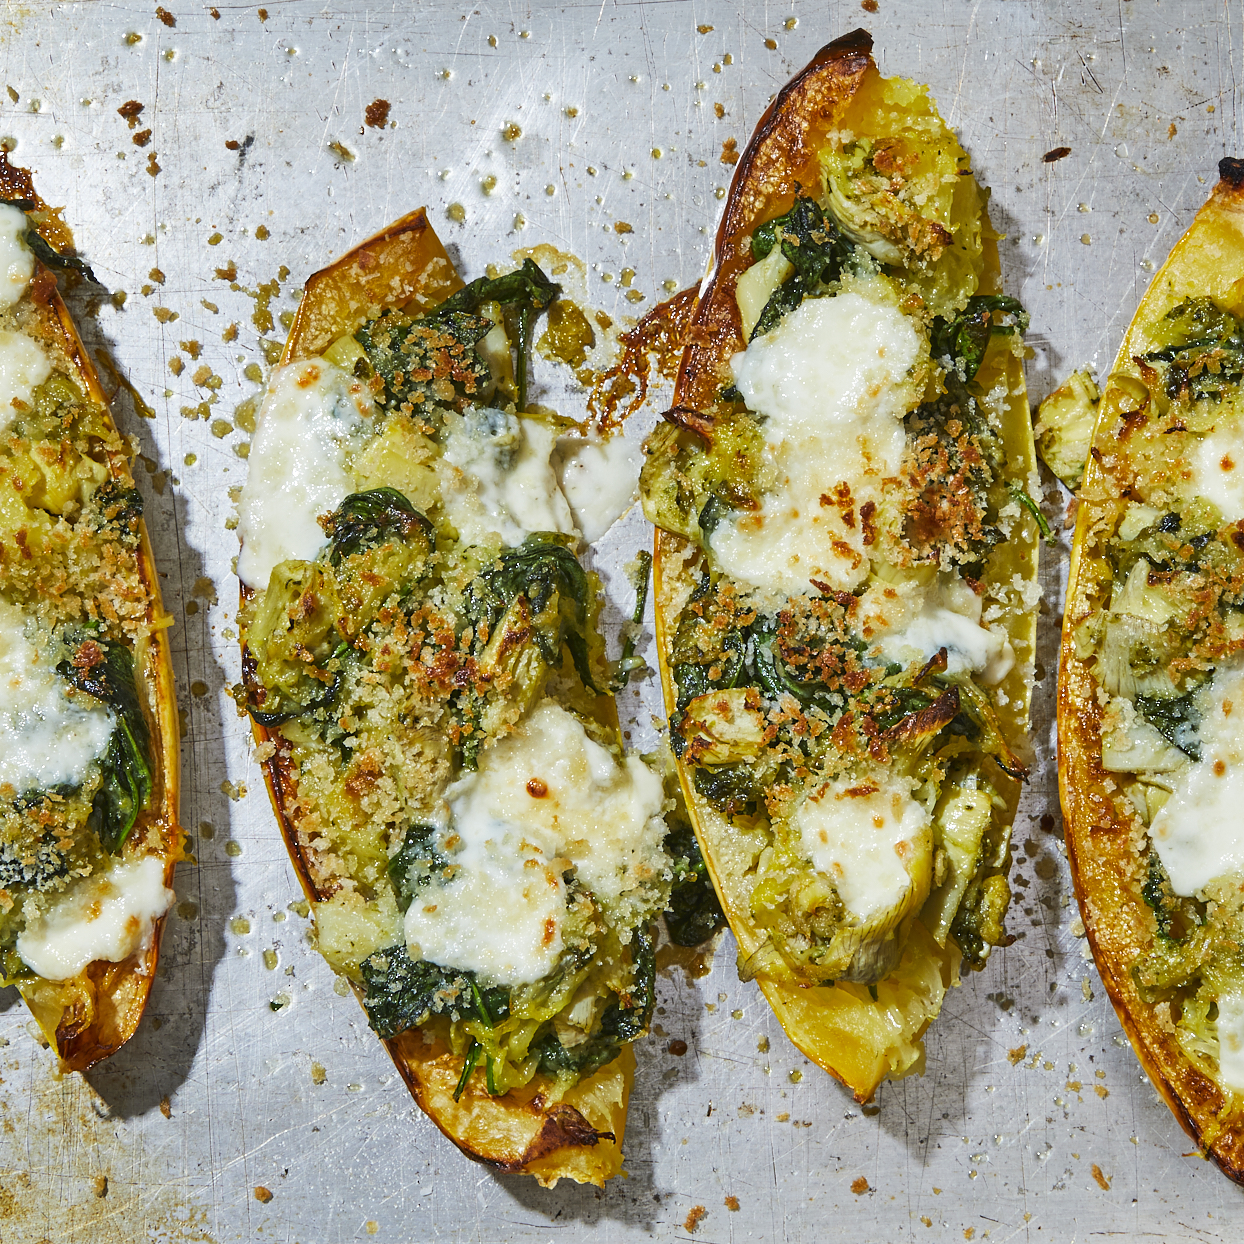 This delicious, cheesy, full-flavored pesto-stuffed spaghetti squash is hearty and filling, full of vegetables and topped with melted fresh mozzarella cheese. It's a perfect main dish for vegetarians and nonvegetarians alike! Source: EatingWell.com, May 2020